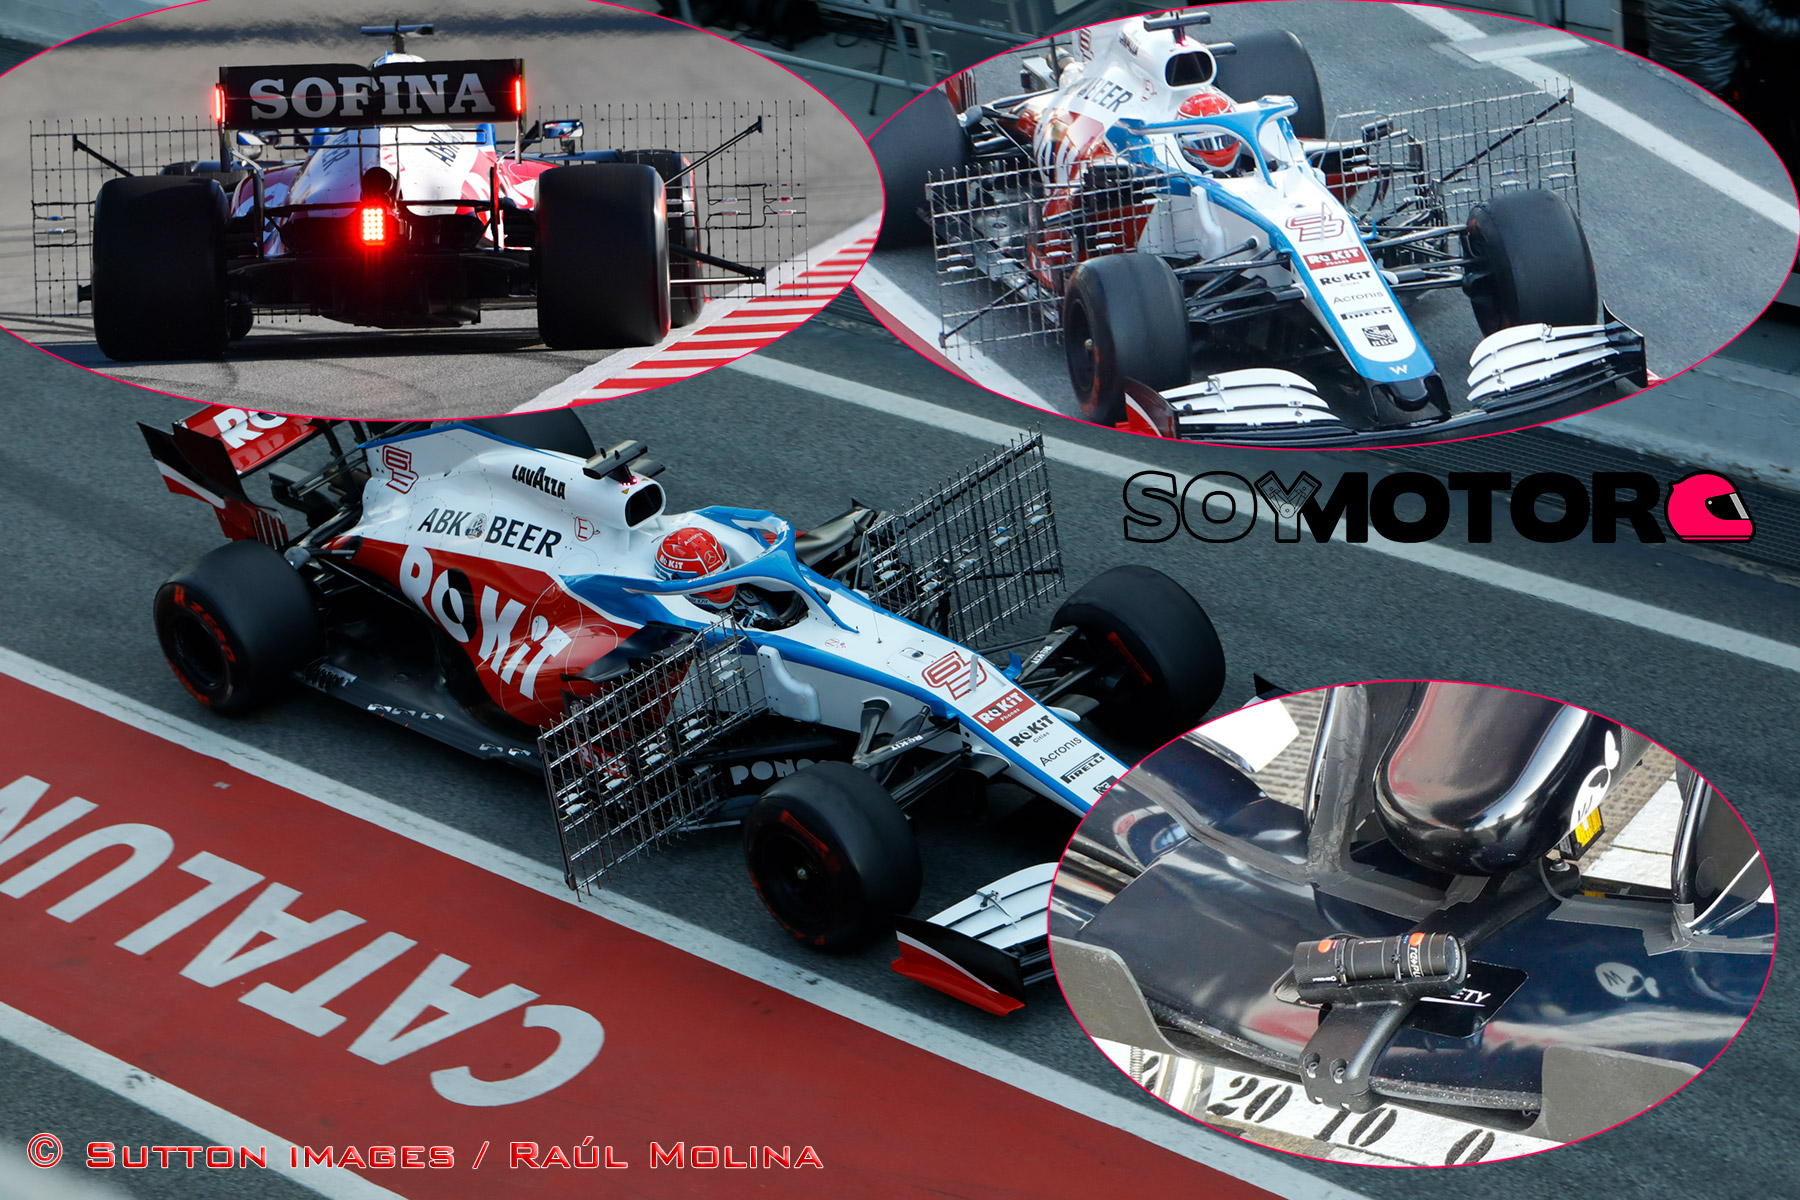 williams-pruebas-soymotor.jpg